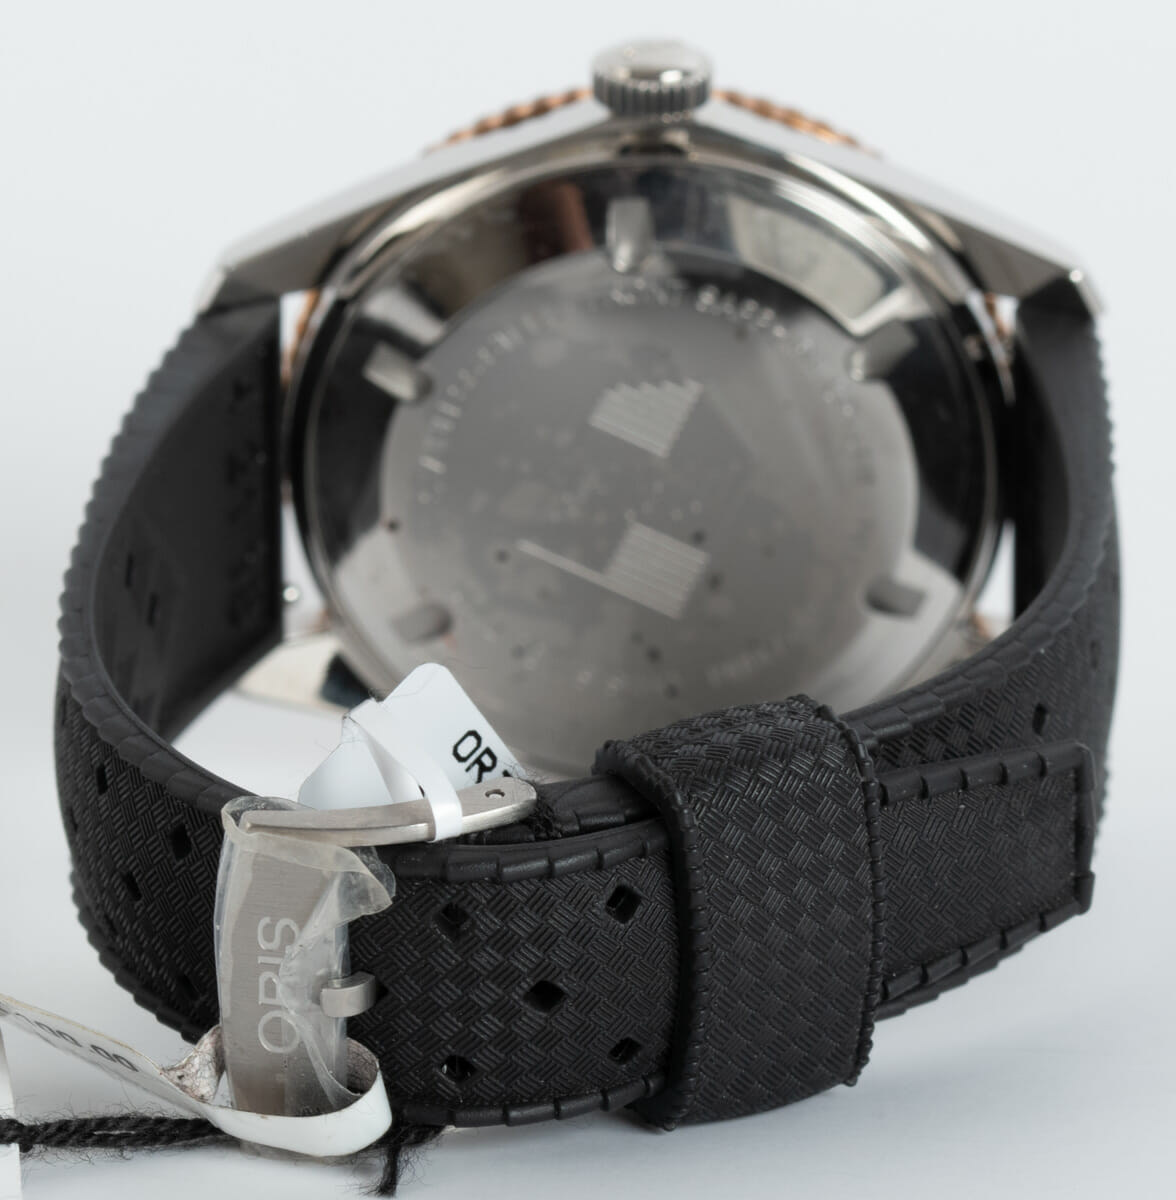 Rear / Band View of Divers Sixty-Five